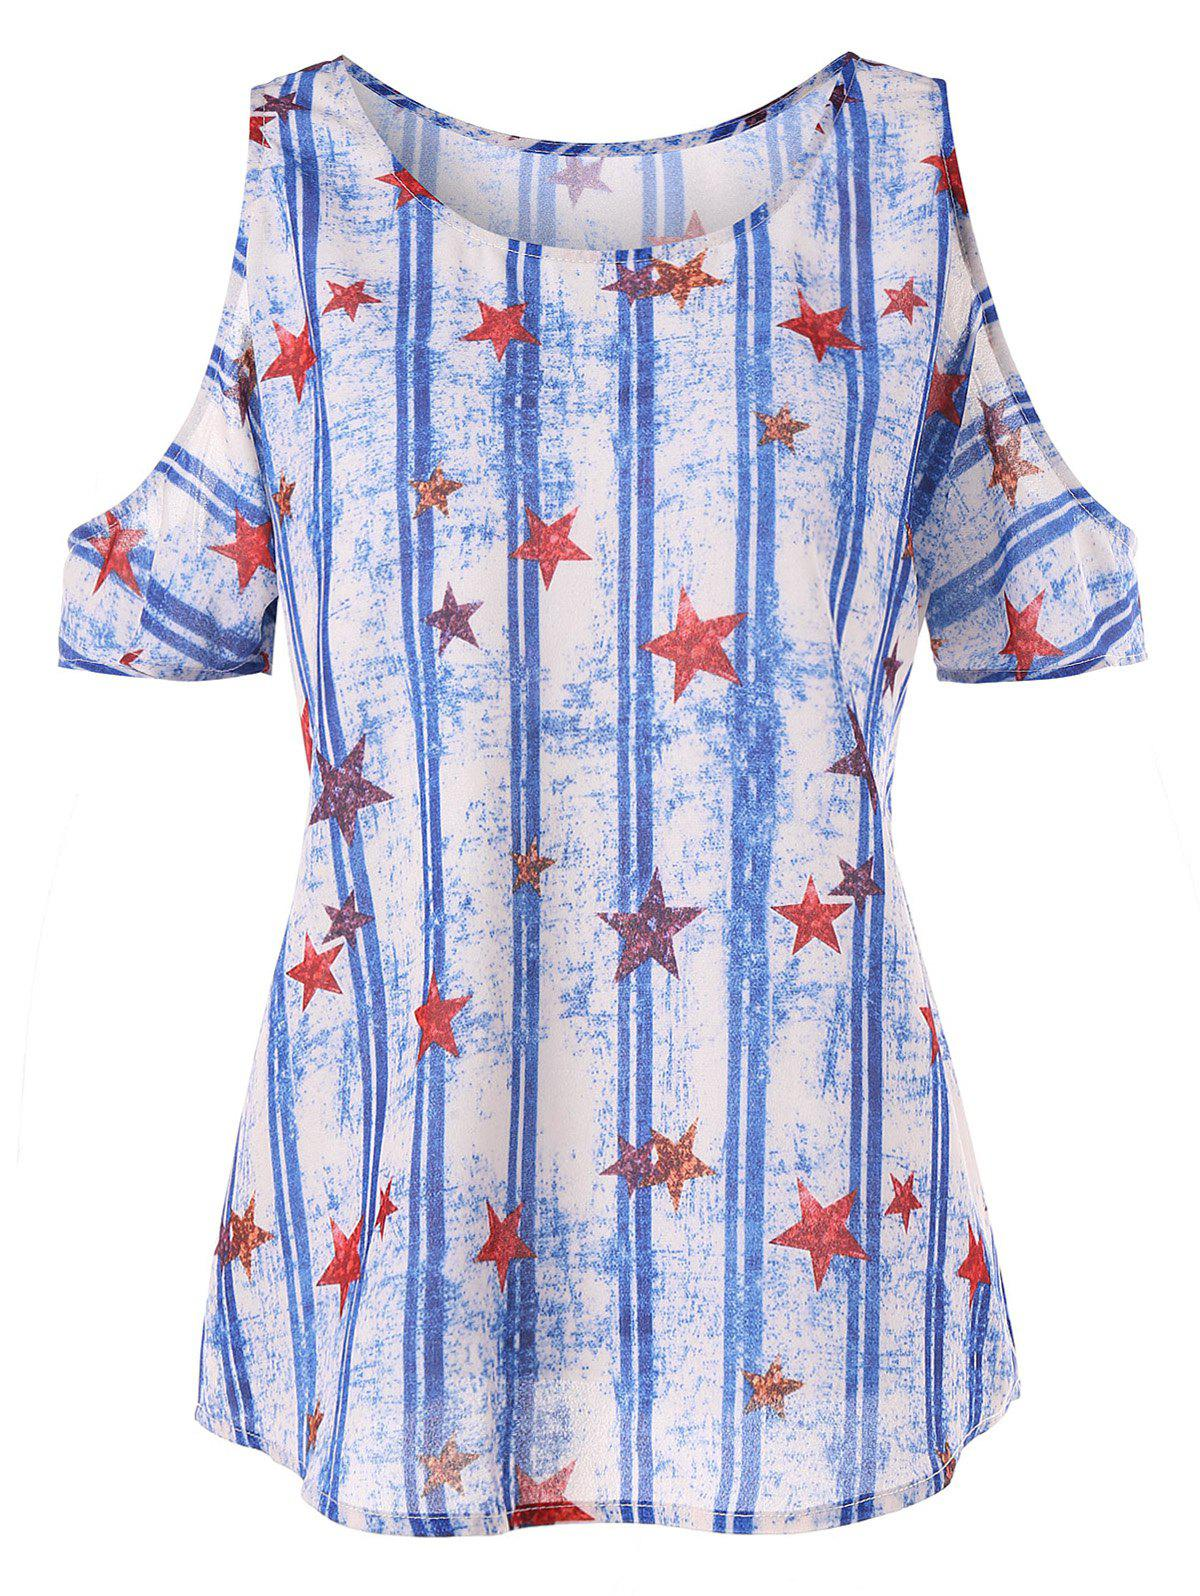 Stars and Stripes Cold Shoulder T-shirt lizard сандали hike w 41 cube violet